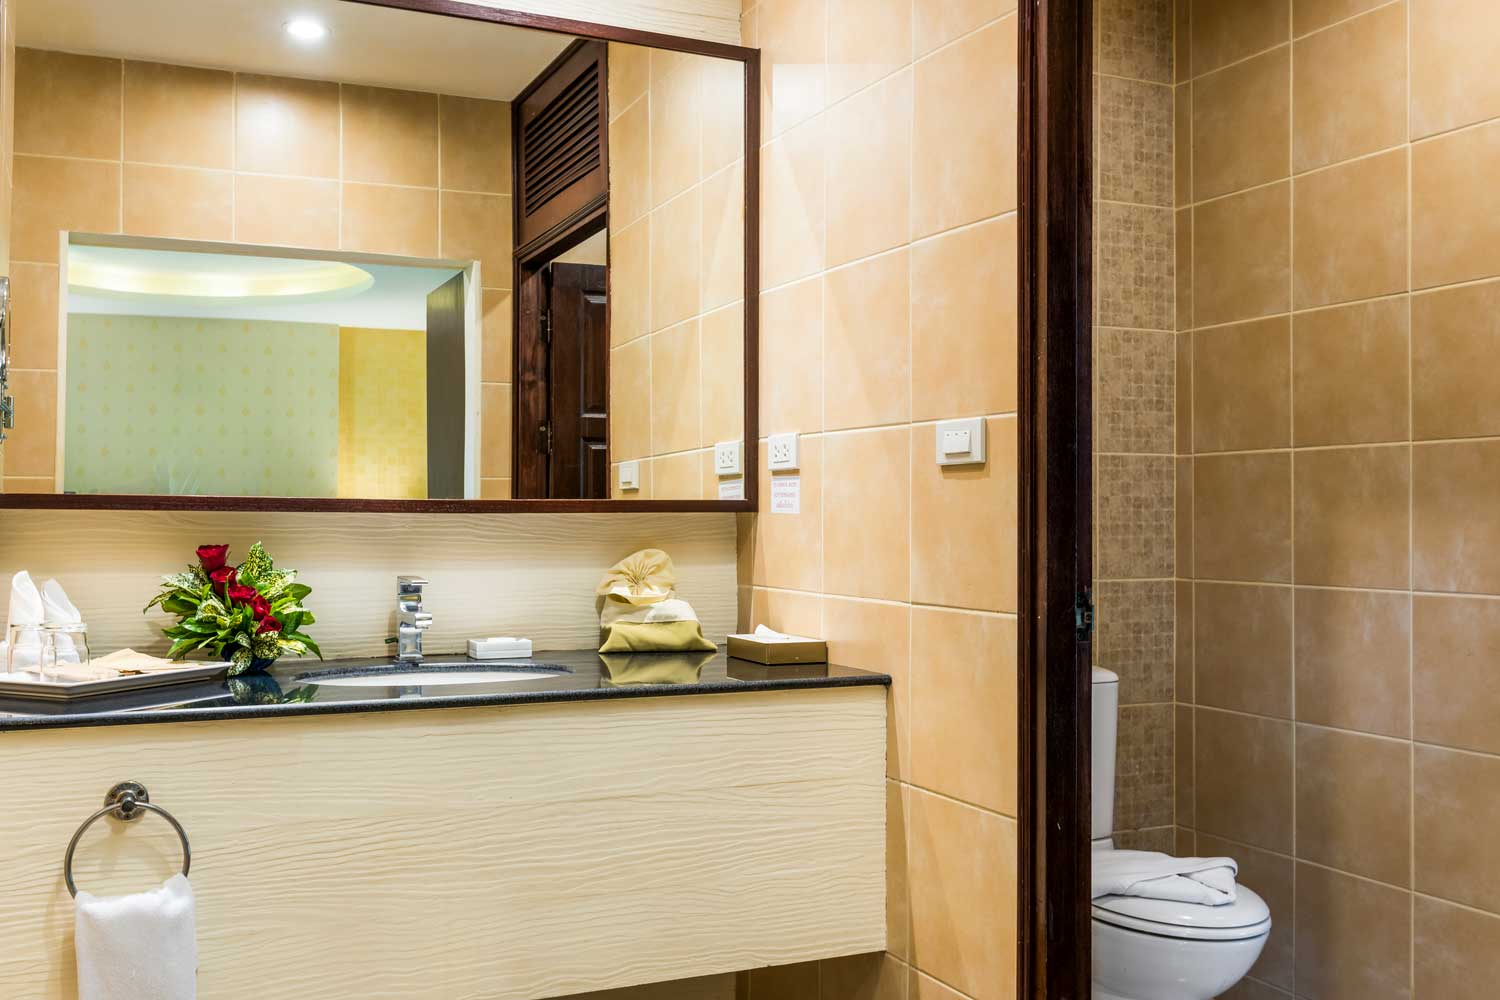 The Bathroom of a superior hotel room with a garden view of the Thai Garden Resort in Pattaya, Thailand.